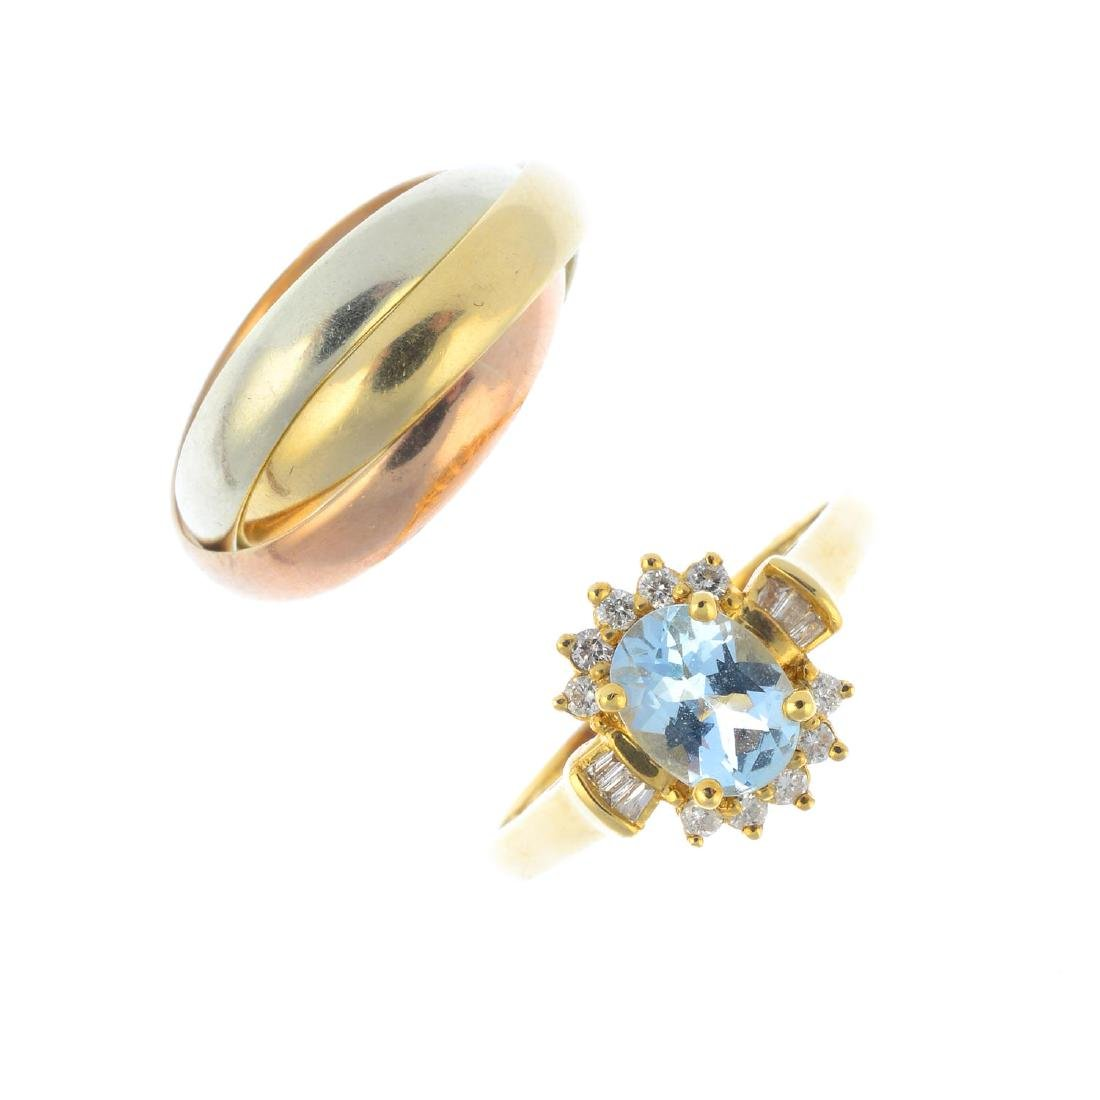 A 9ct gold band ring and an aquamarine and diamond